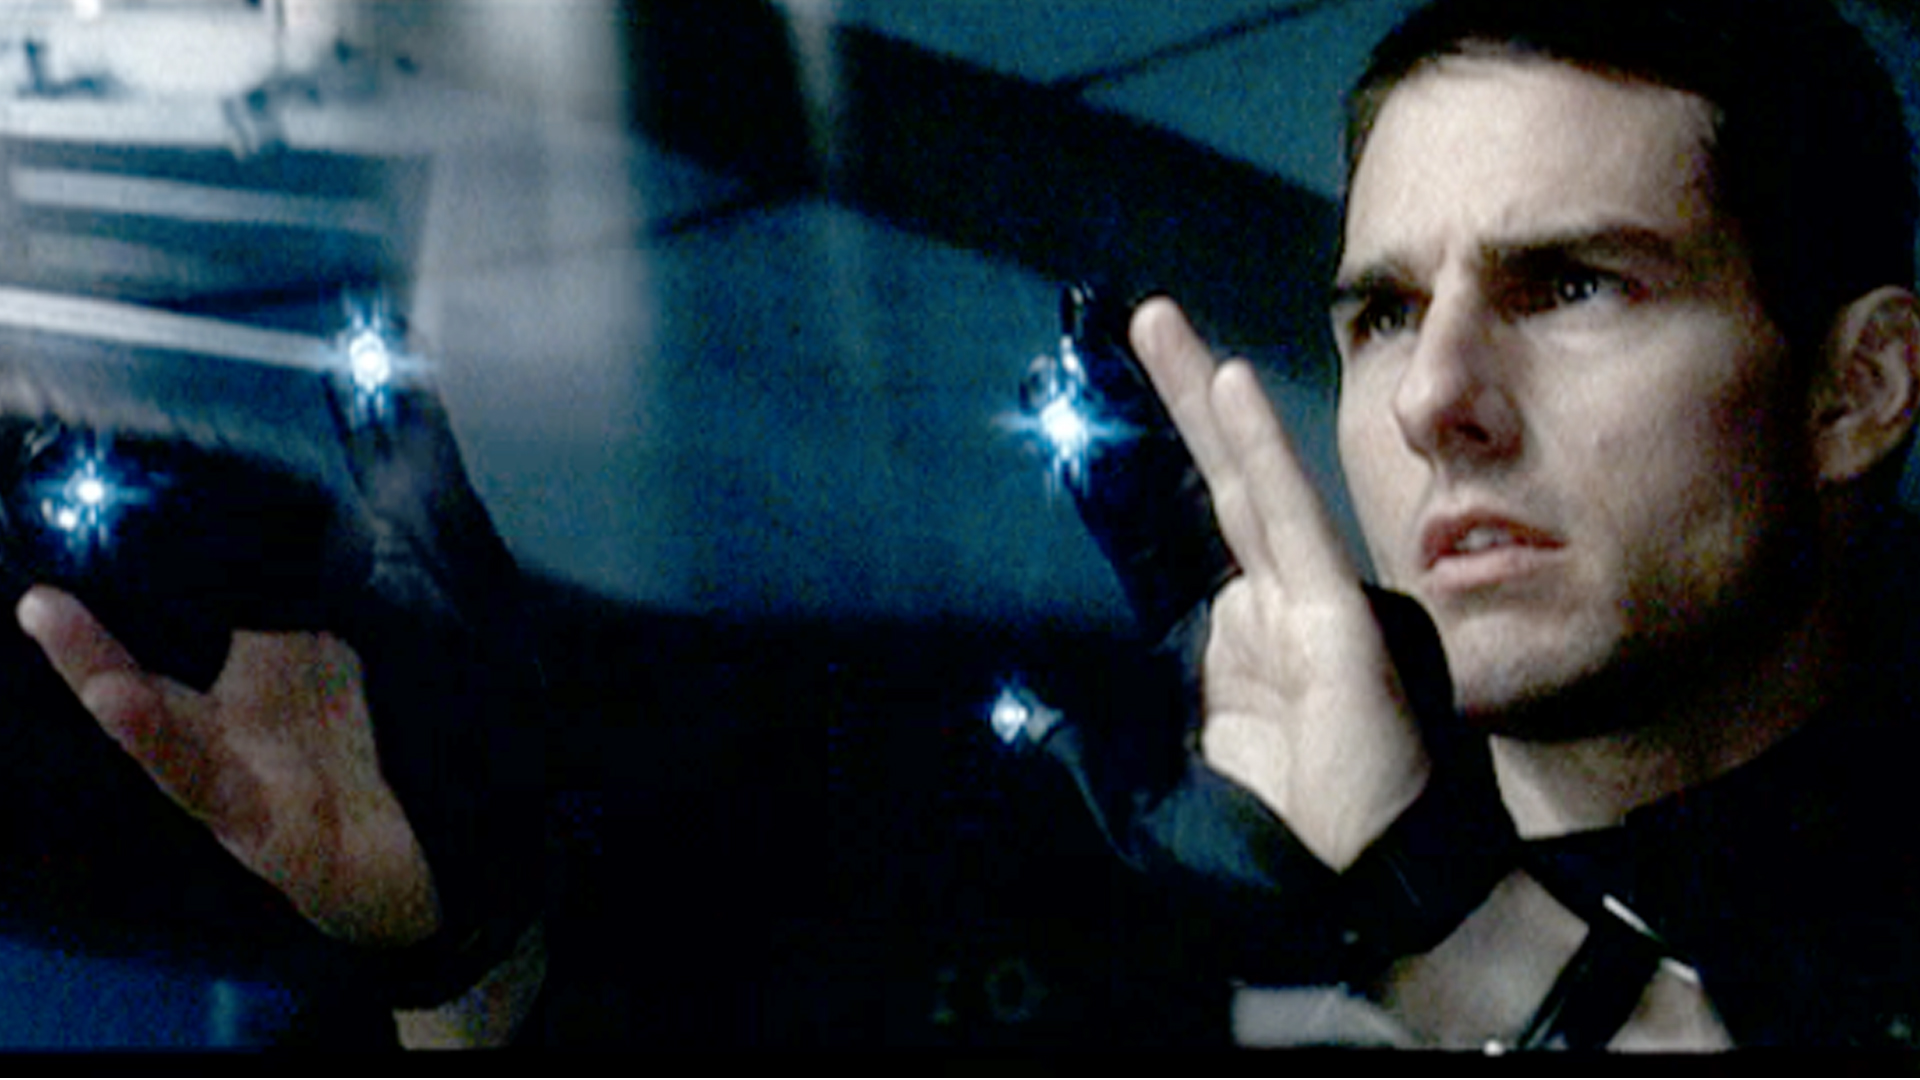 Minority Report Backgrounds, Compatible - PC, Mobile, Gadgets| 1920x1080 px